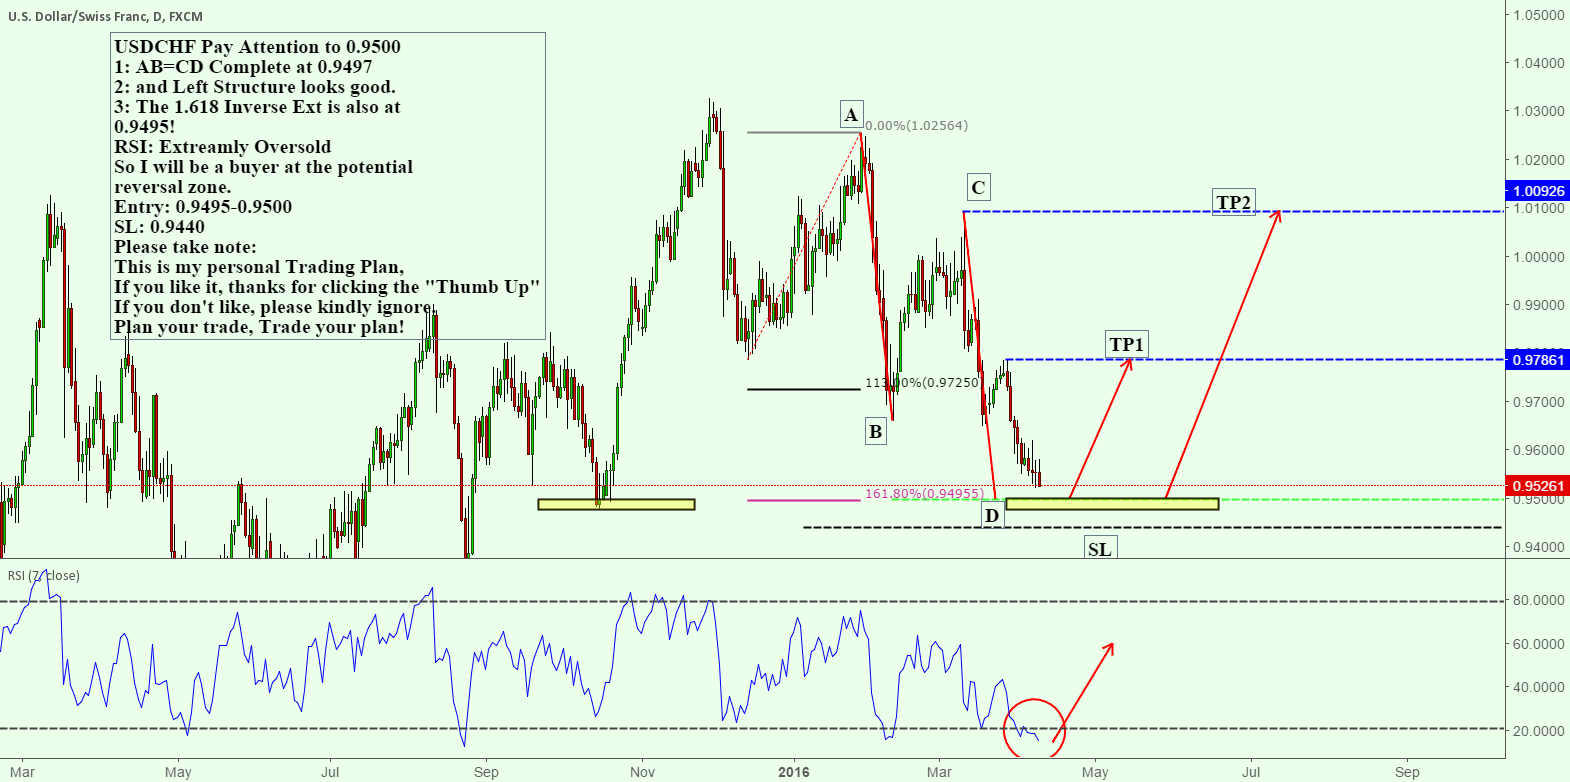 USDCHF Pay Attention to 0.9500